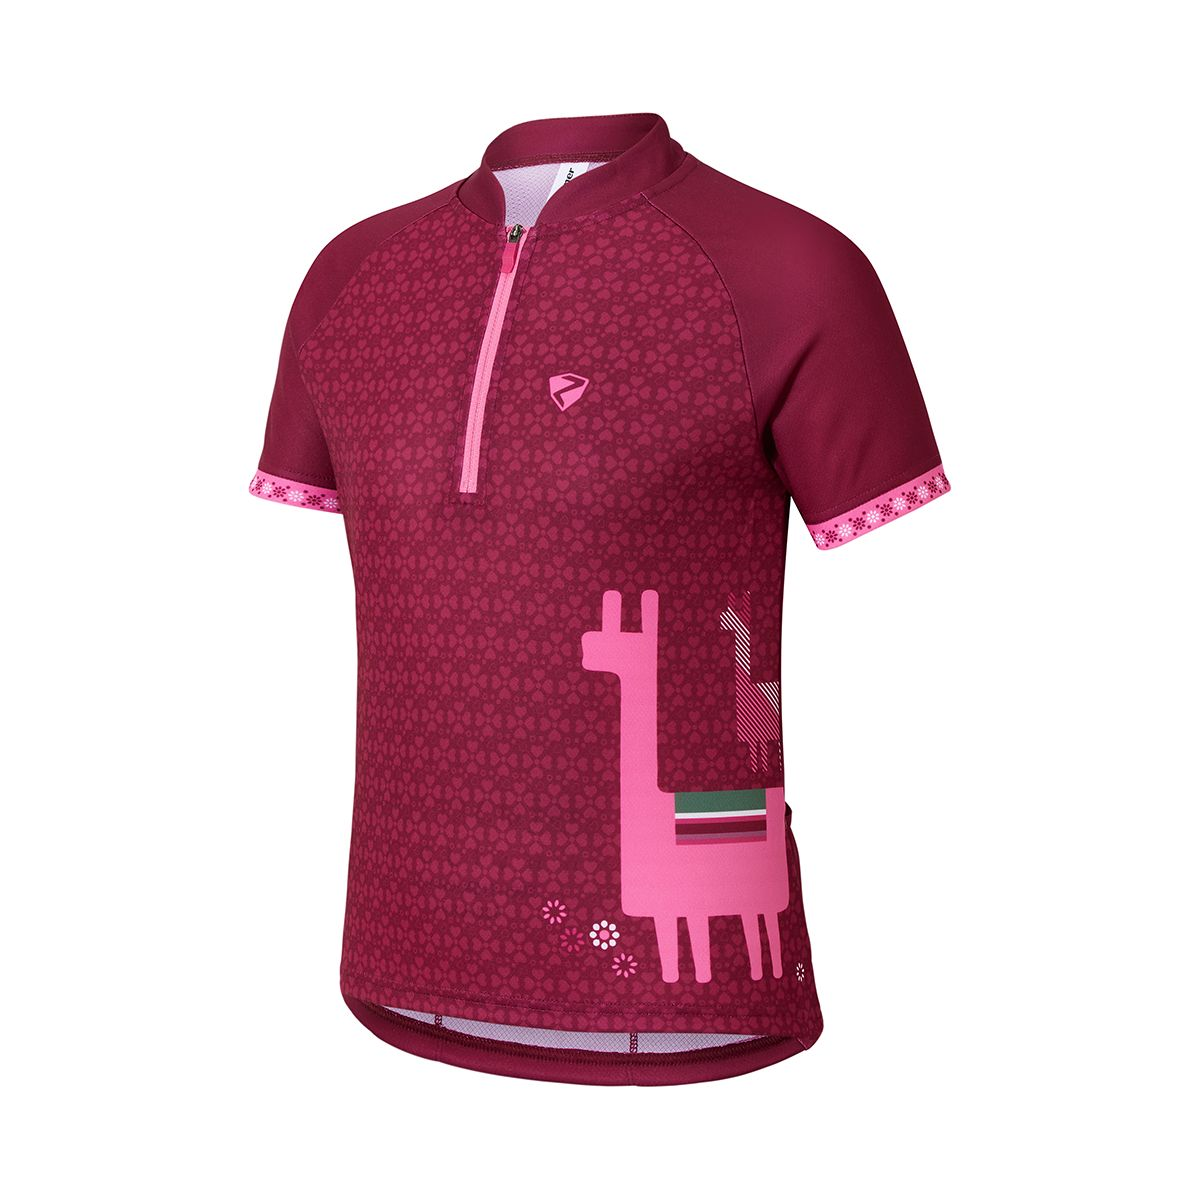 CAGURA kids' cycling jersey